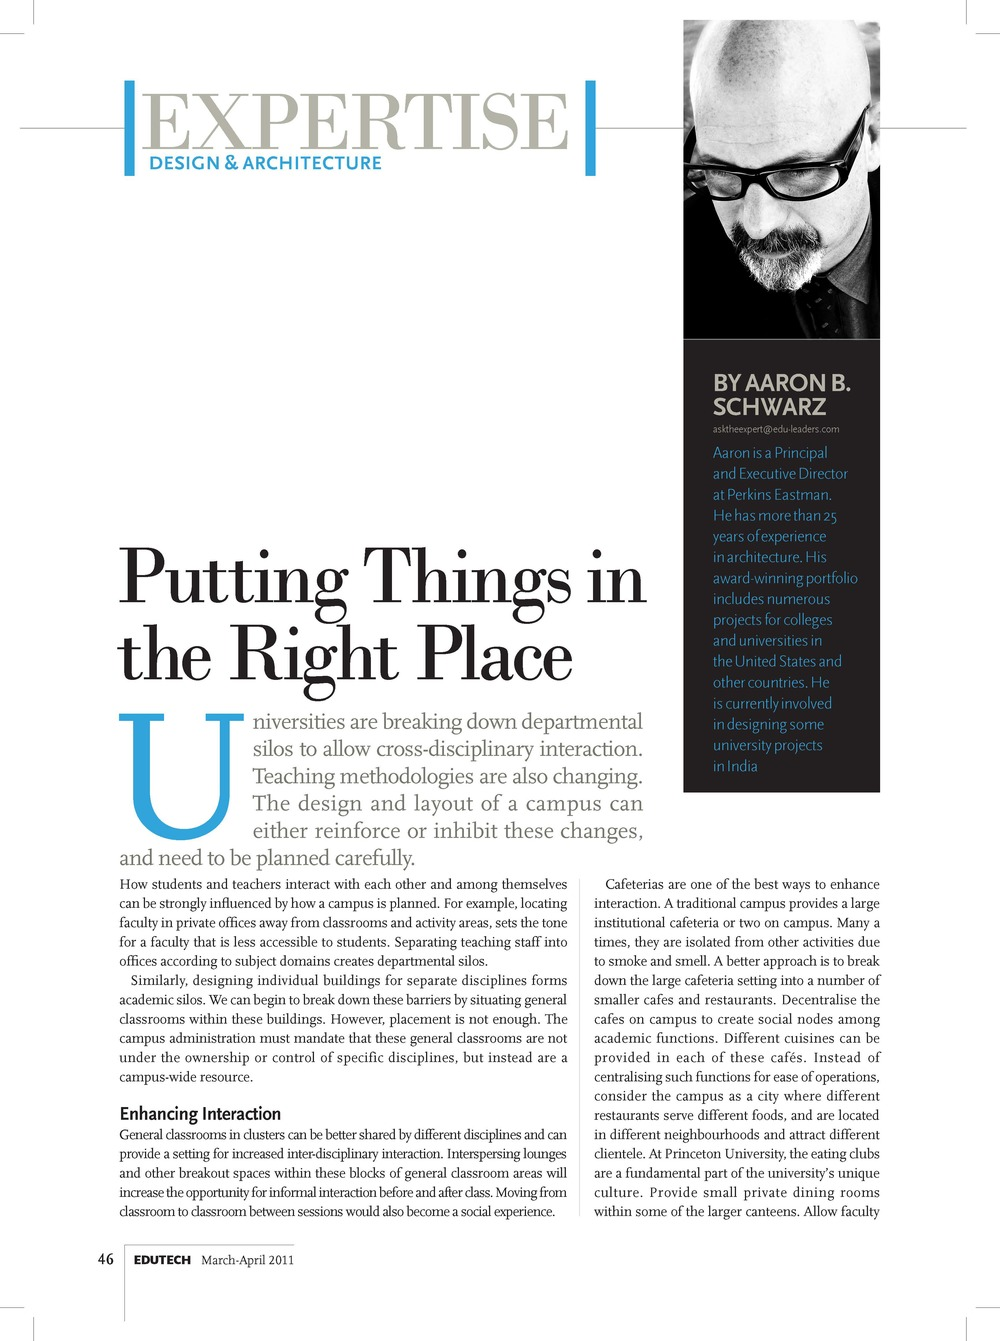 Expertise - Aaron Schwaz - Putting things in the Right Place